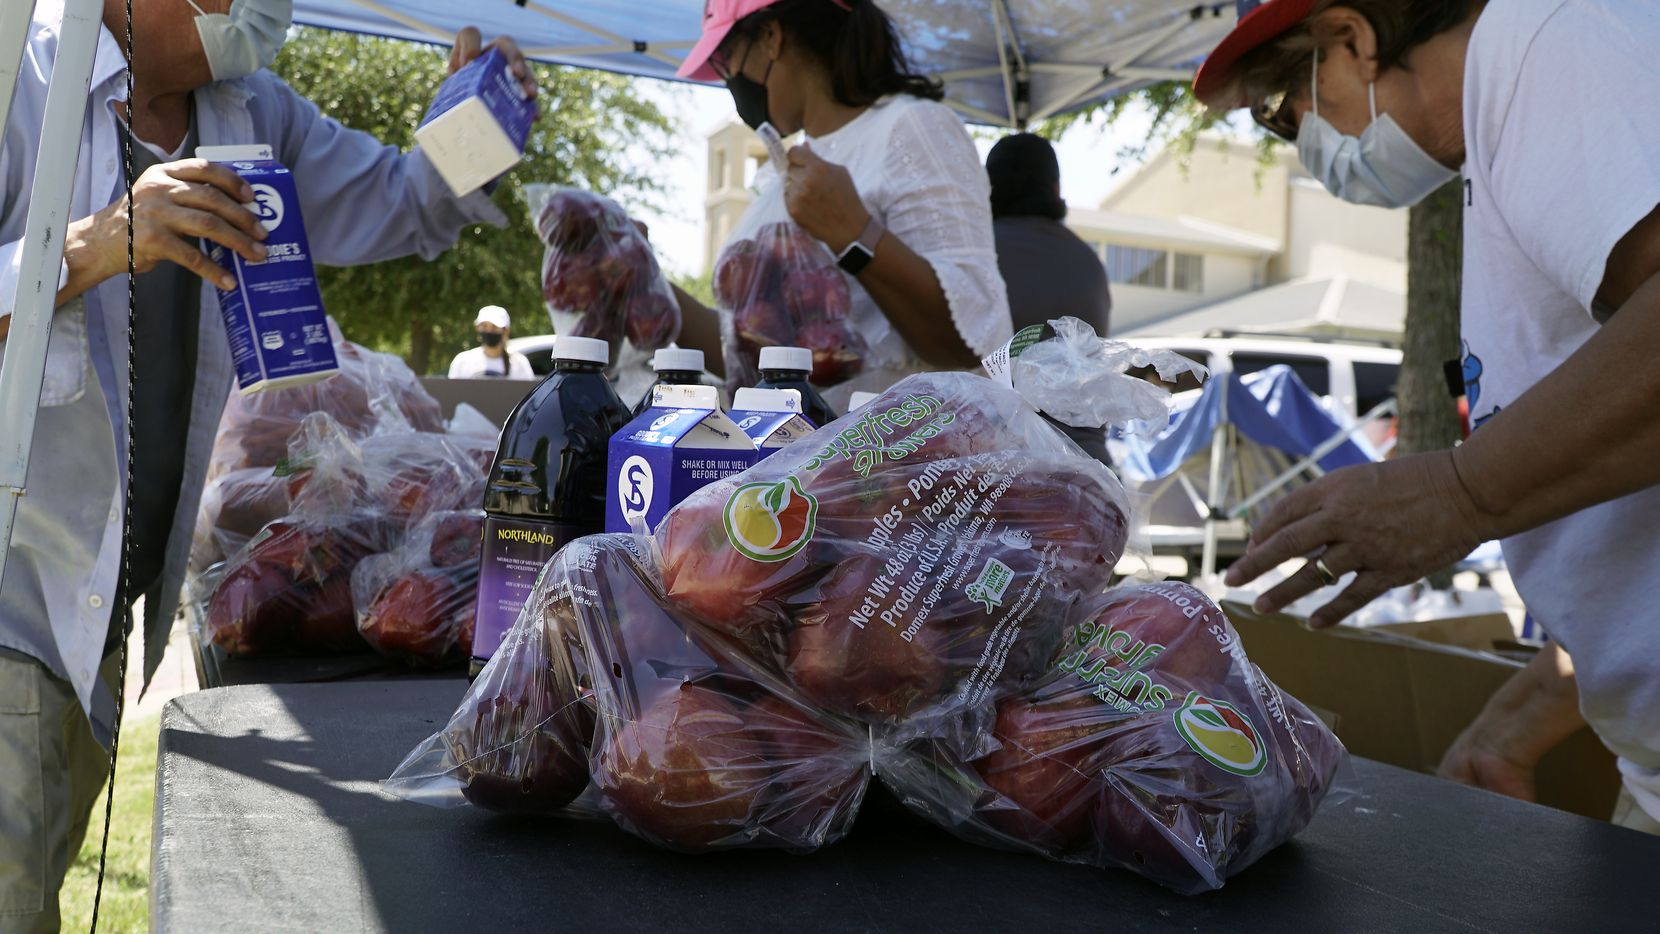 Bags By Bedi fed over 100 families during a food drive at St. Cecilia's Catholic Church in Dallas, Texas on Thursday, August 20, 2020. They provided fruit and vegetables, as well as milk and juice. (Lawrence Jenkins/Special Contributor)